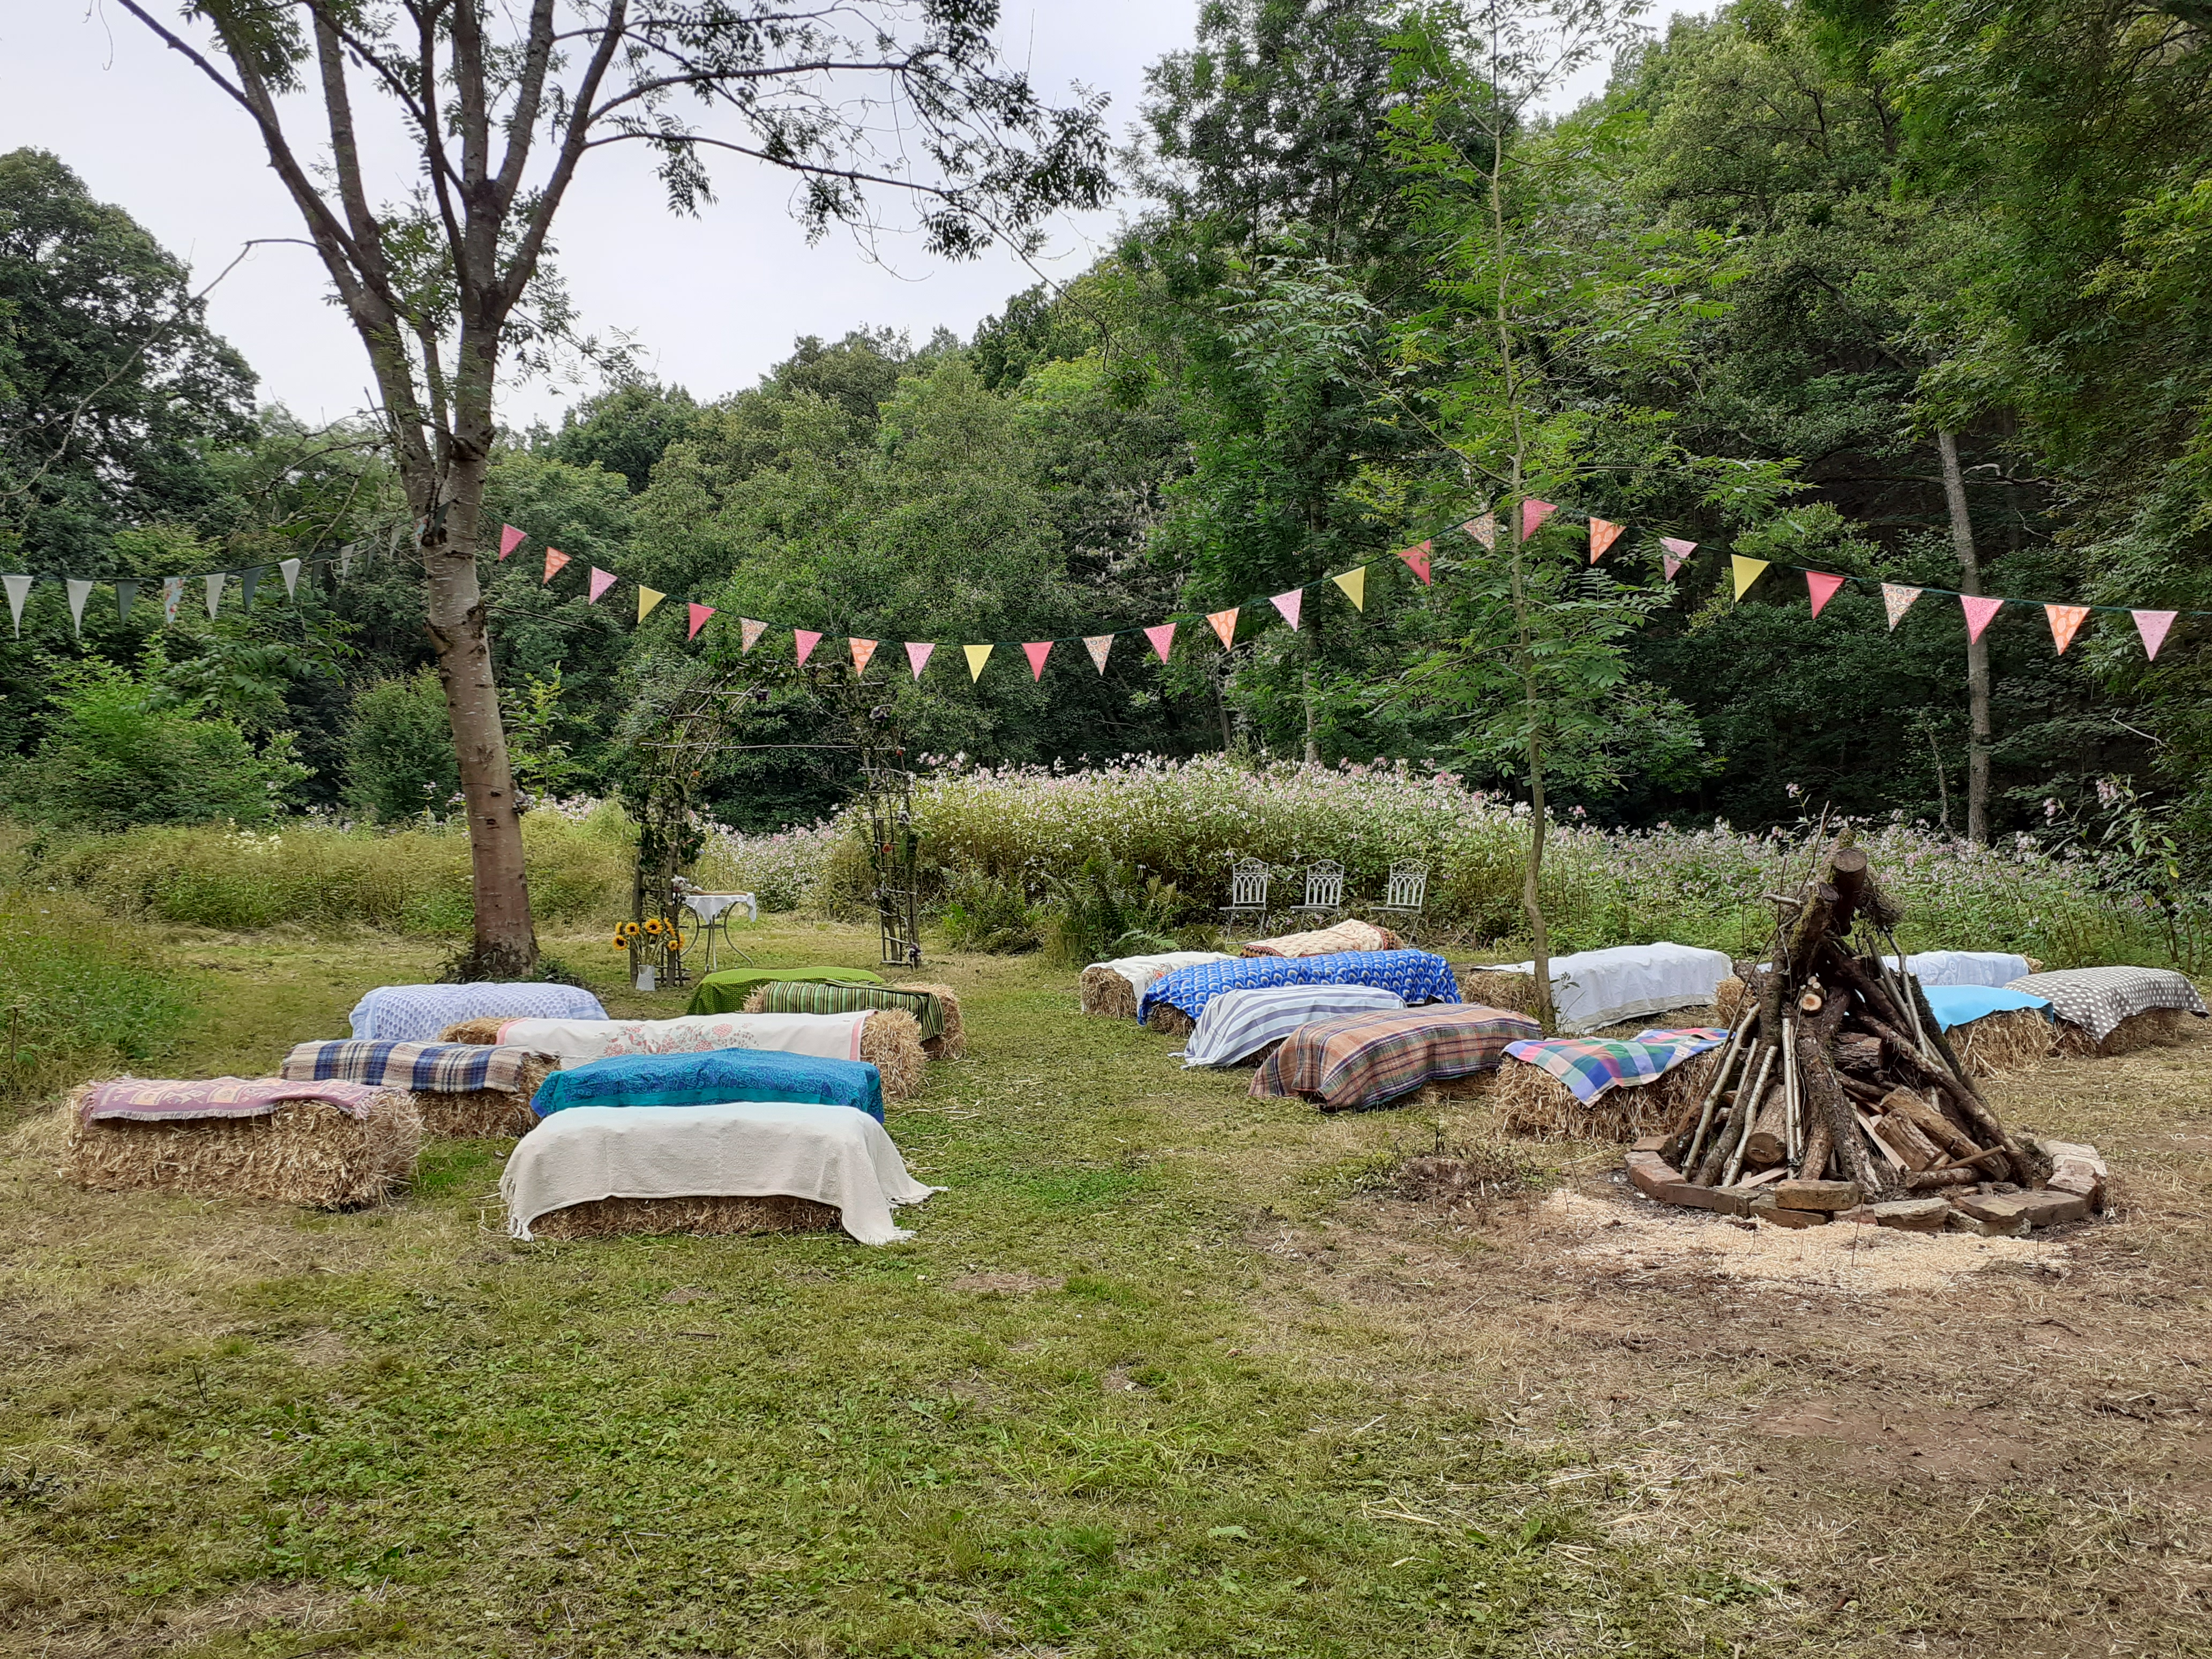 A garden decorated for an outdoor wedding ceremony with covered haybales, bunting and an unlit bonfire